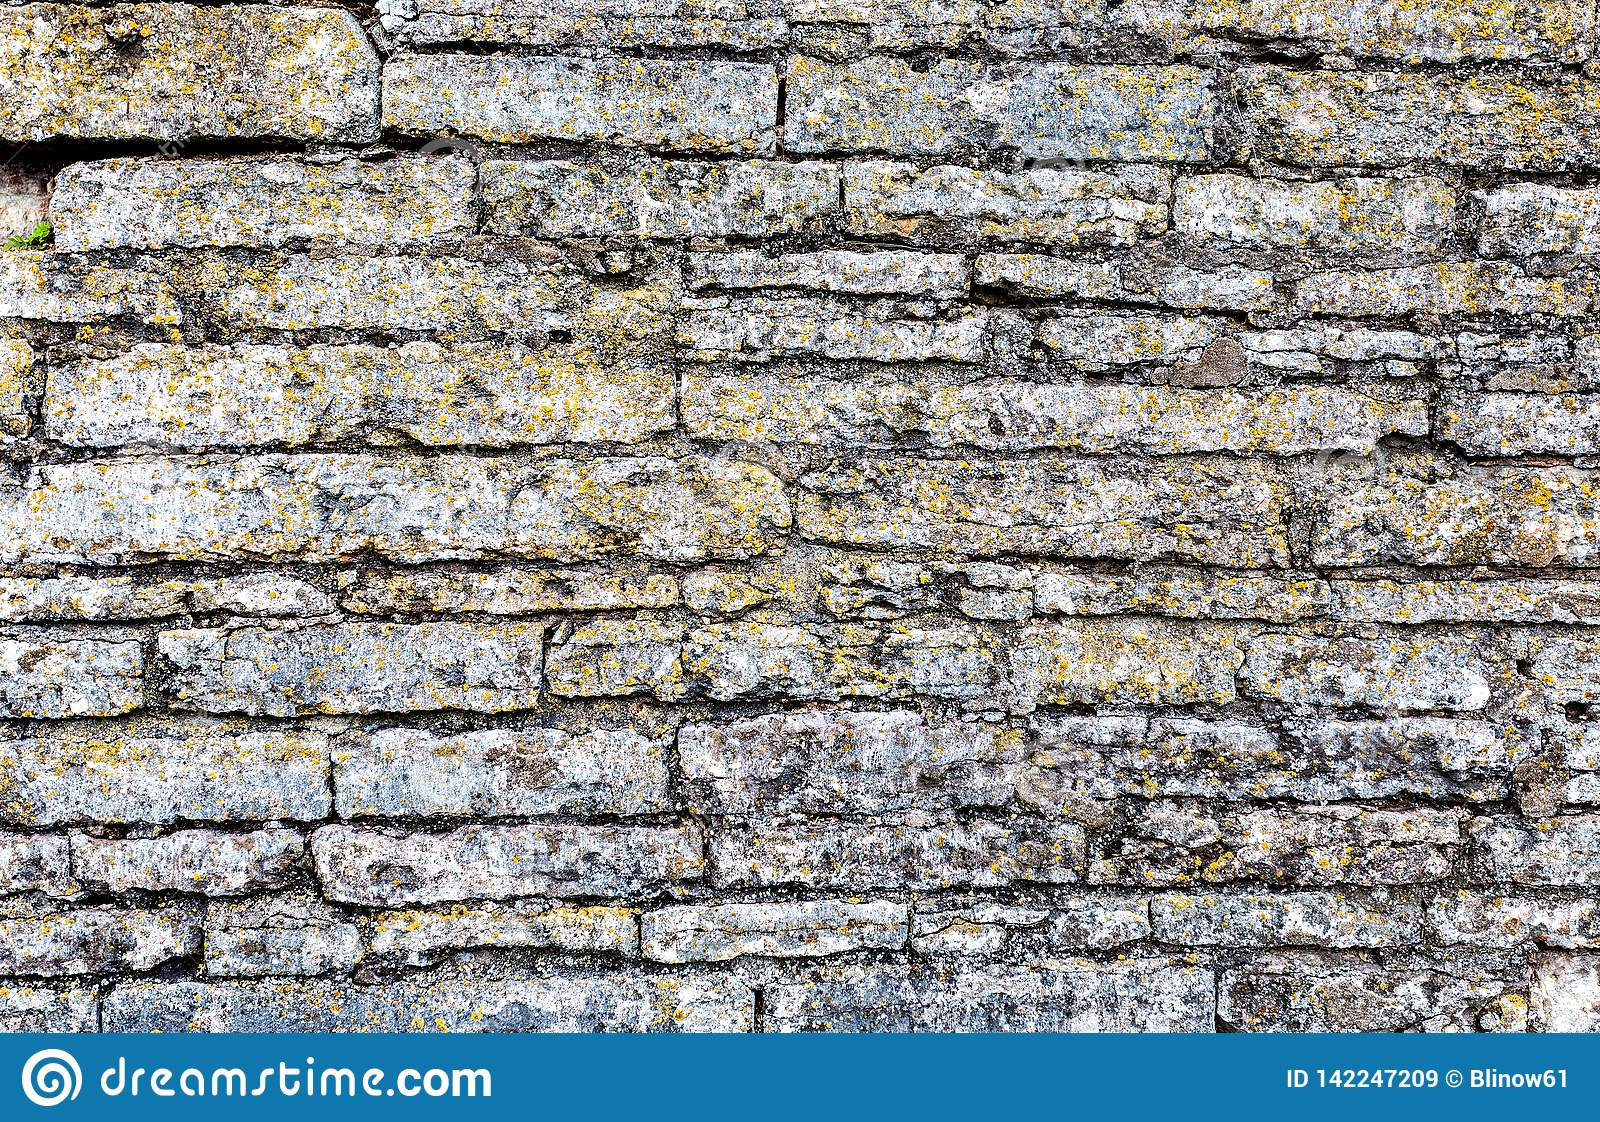 Rough weathered stone wall as background texture